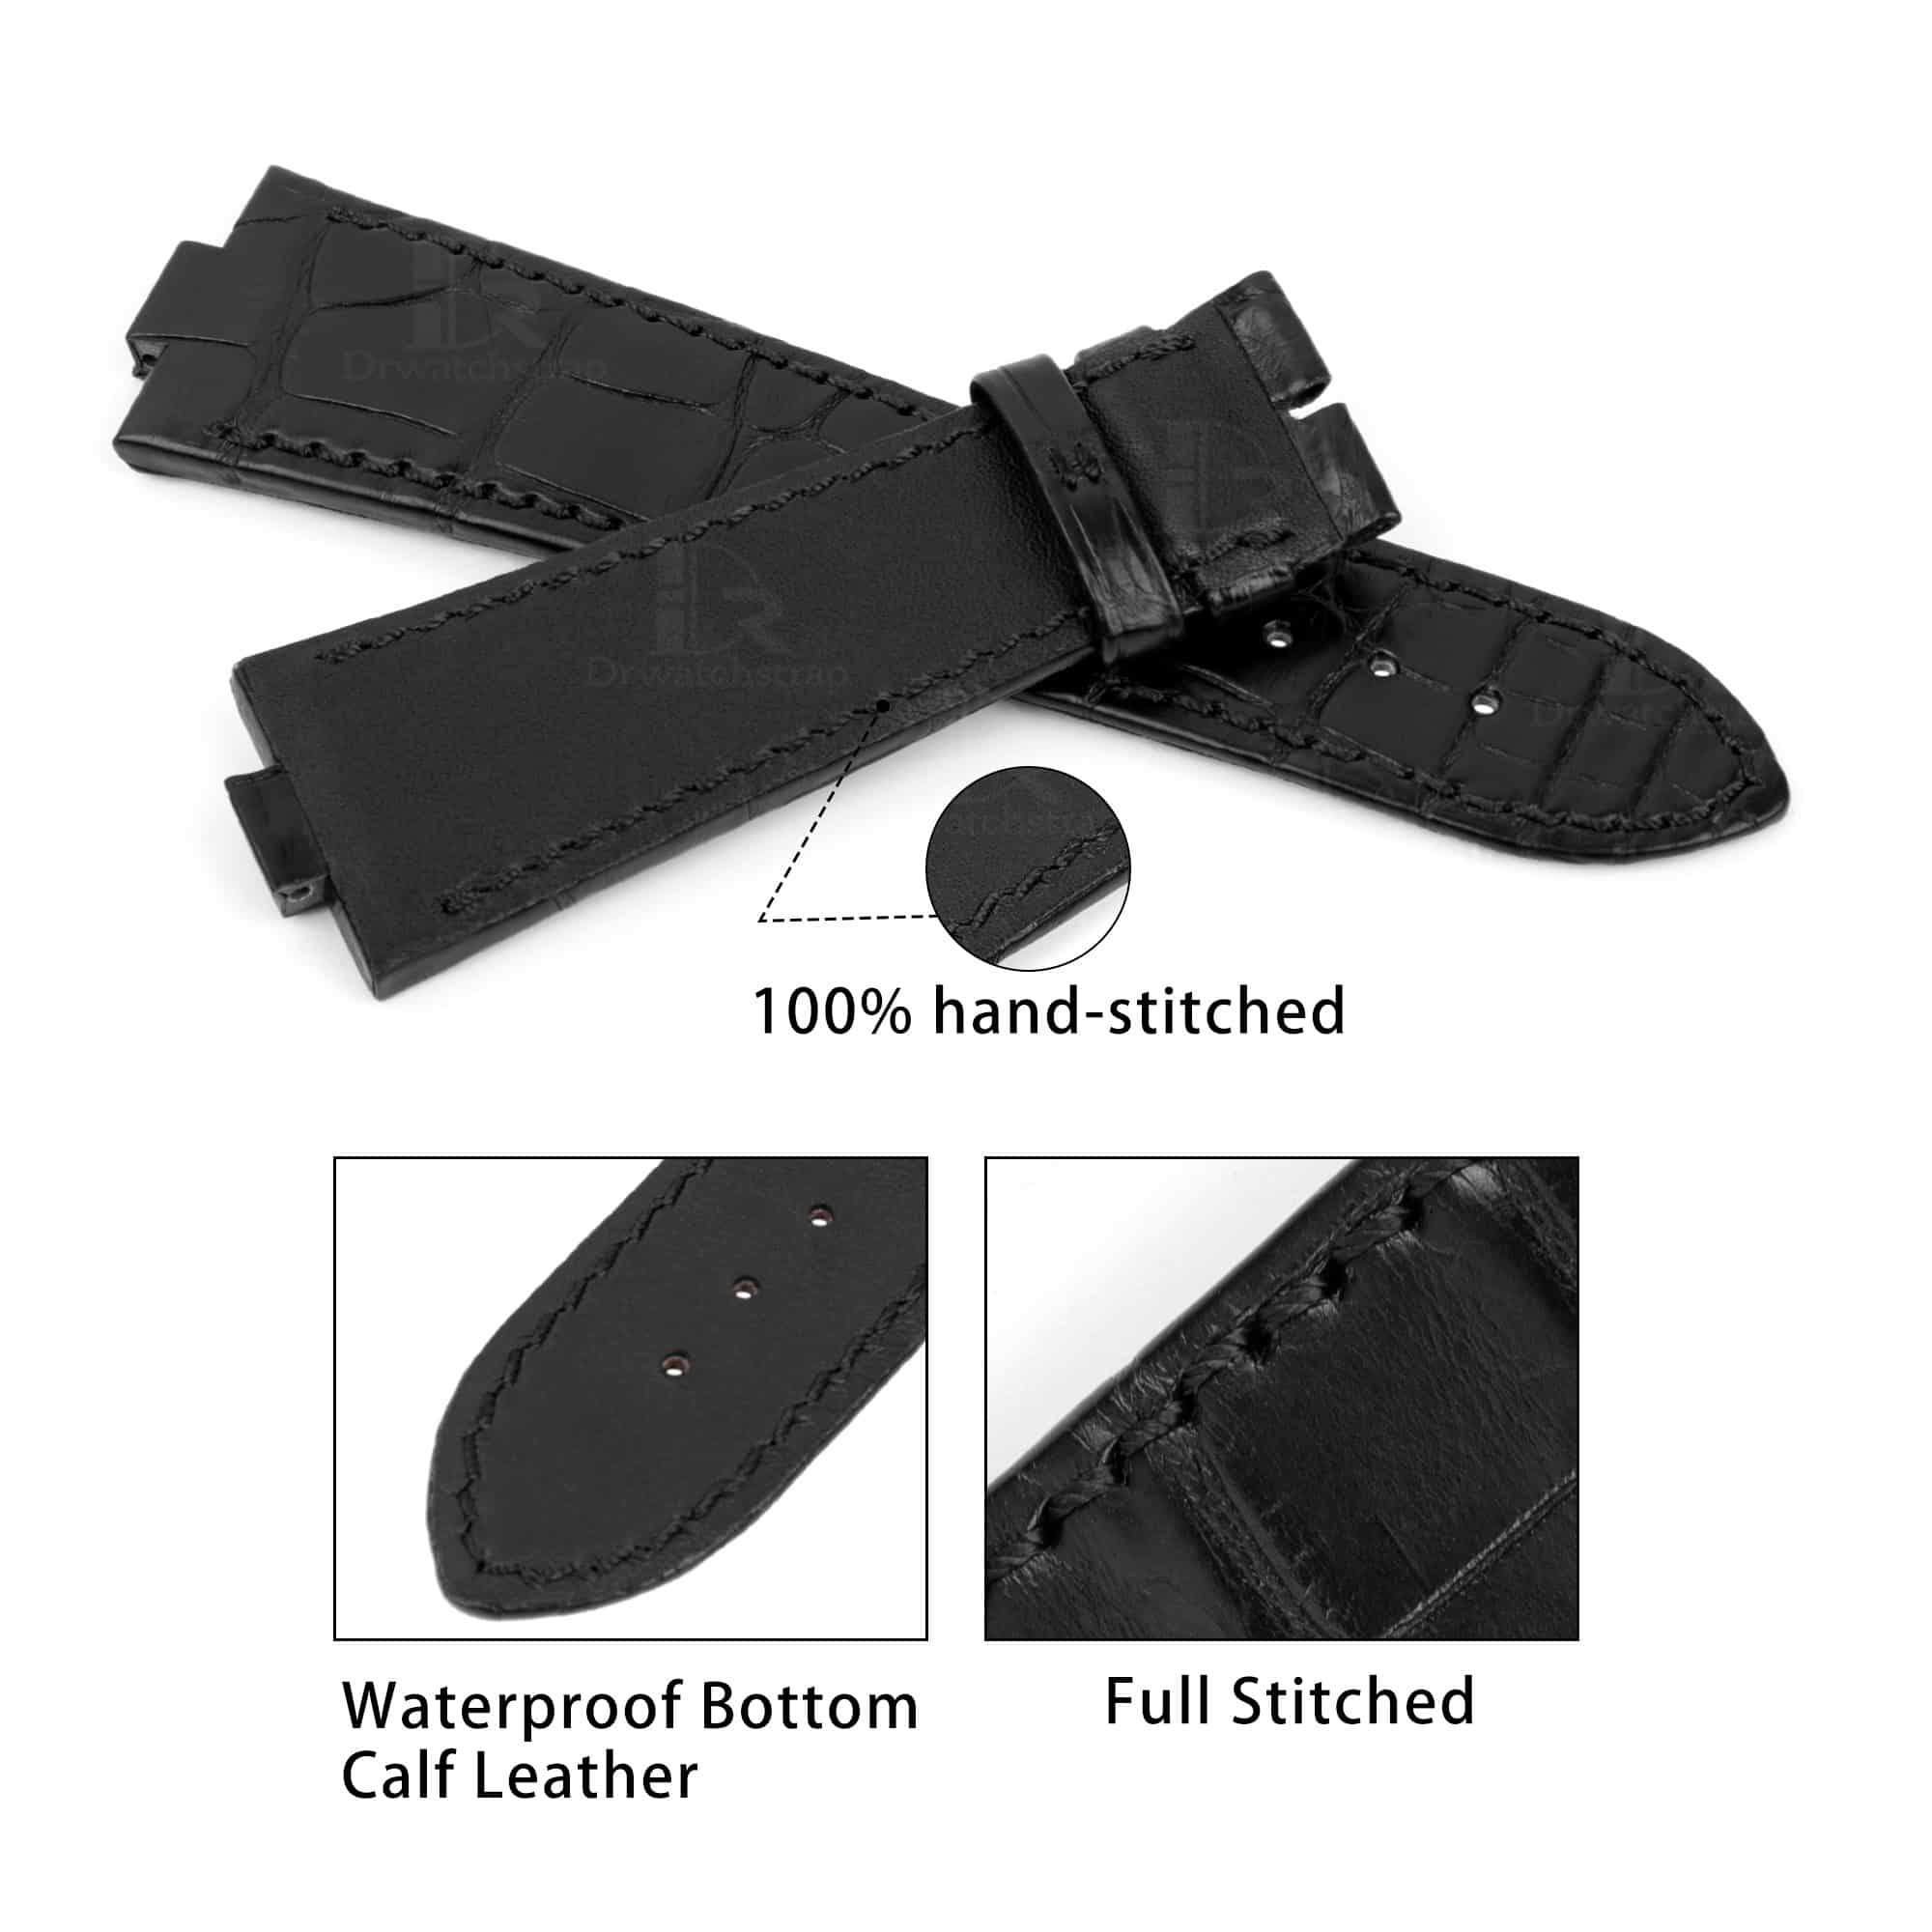 Vacheron Constantin Overseas Leather Strap replacement for sale Custom handmade Black American Alligator watch bands wholesale and retail